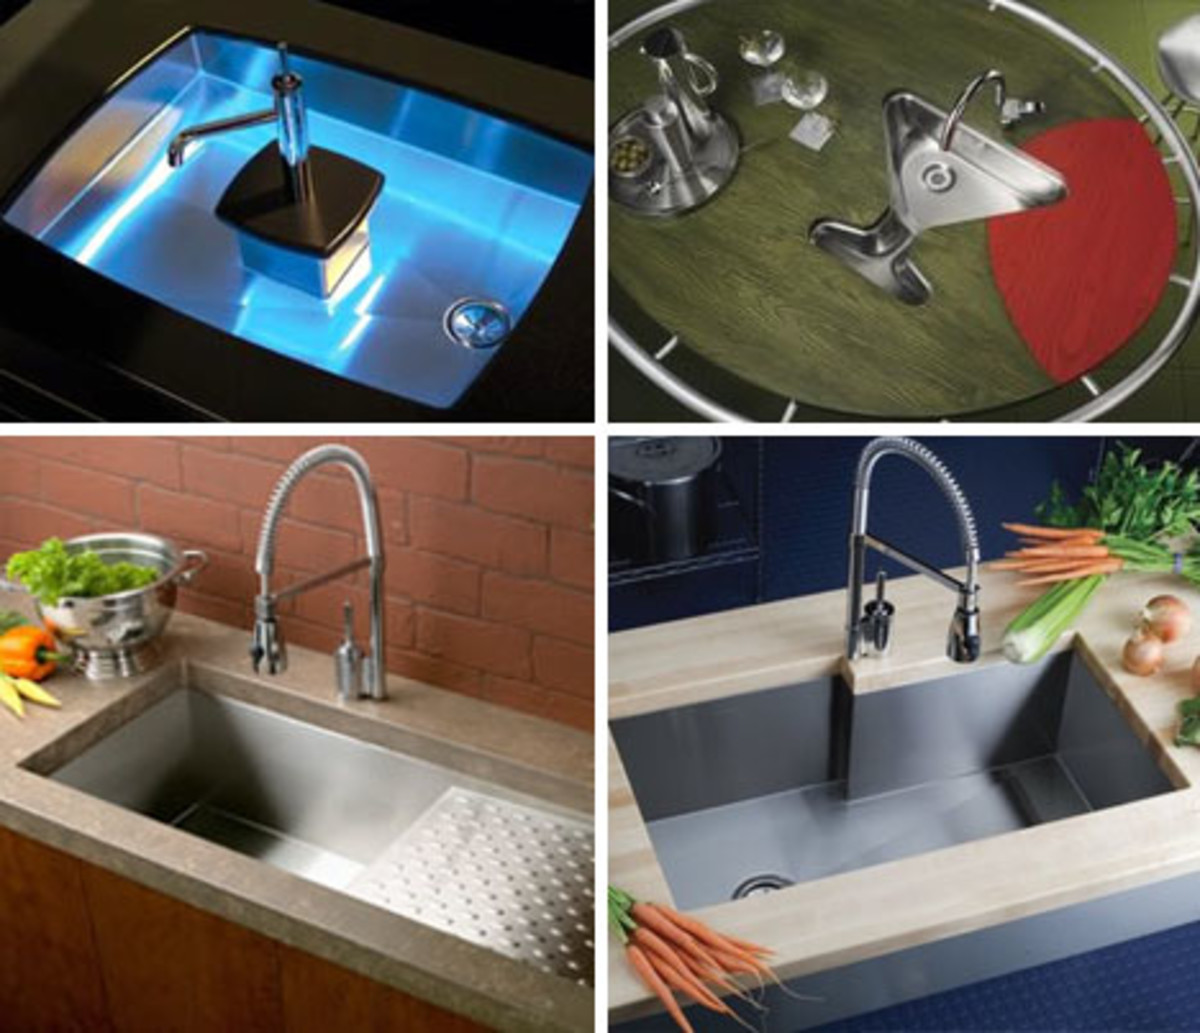 Four Beautiful food preparation sink and faucet with filtered water mounted under the kitchen counter top